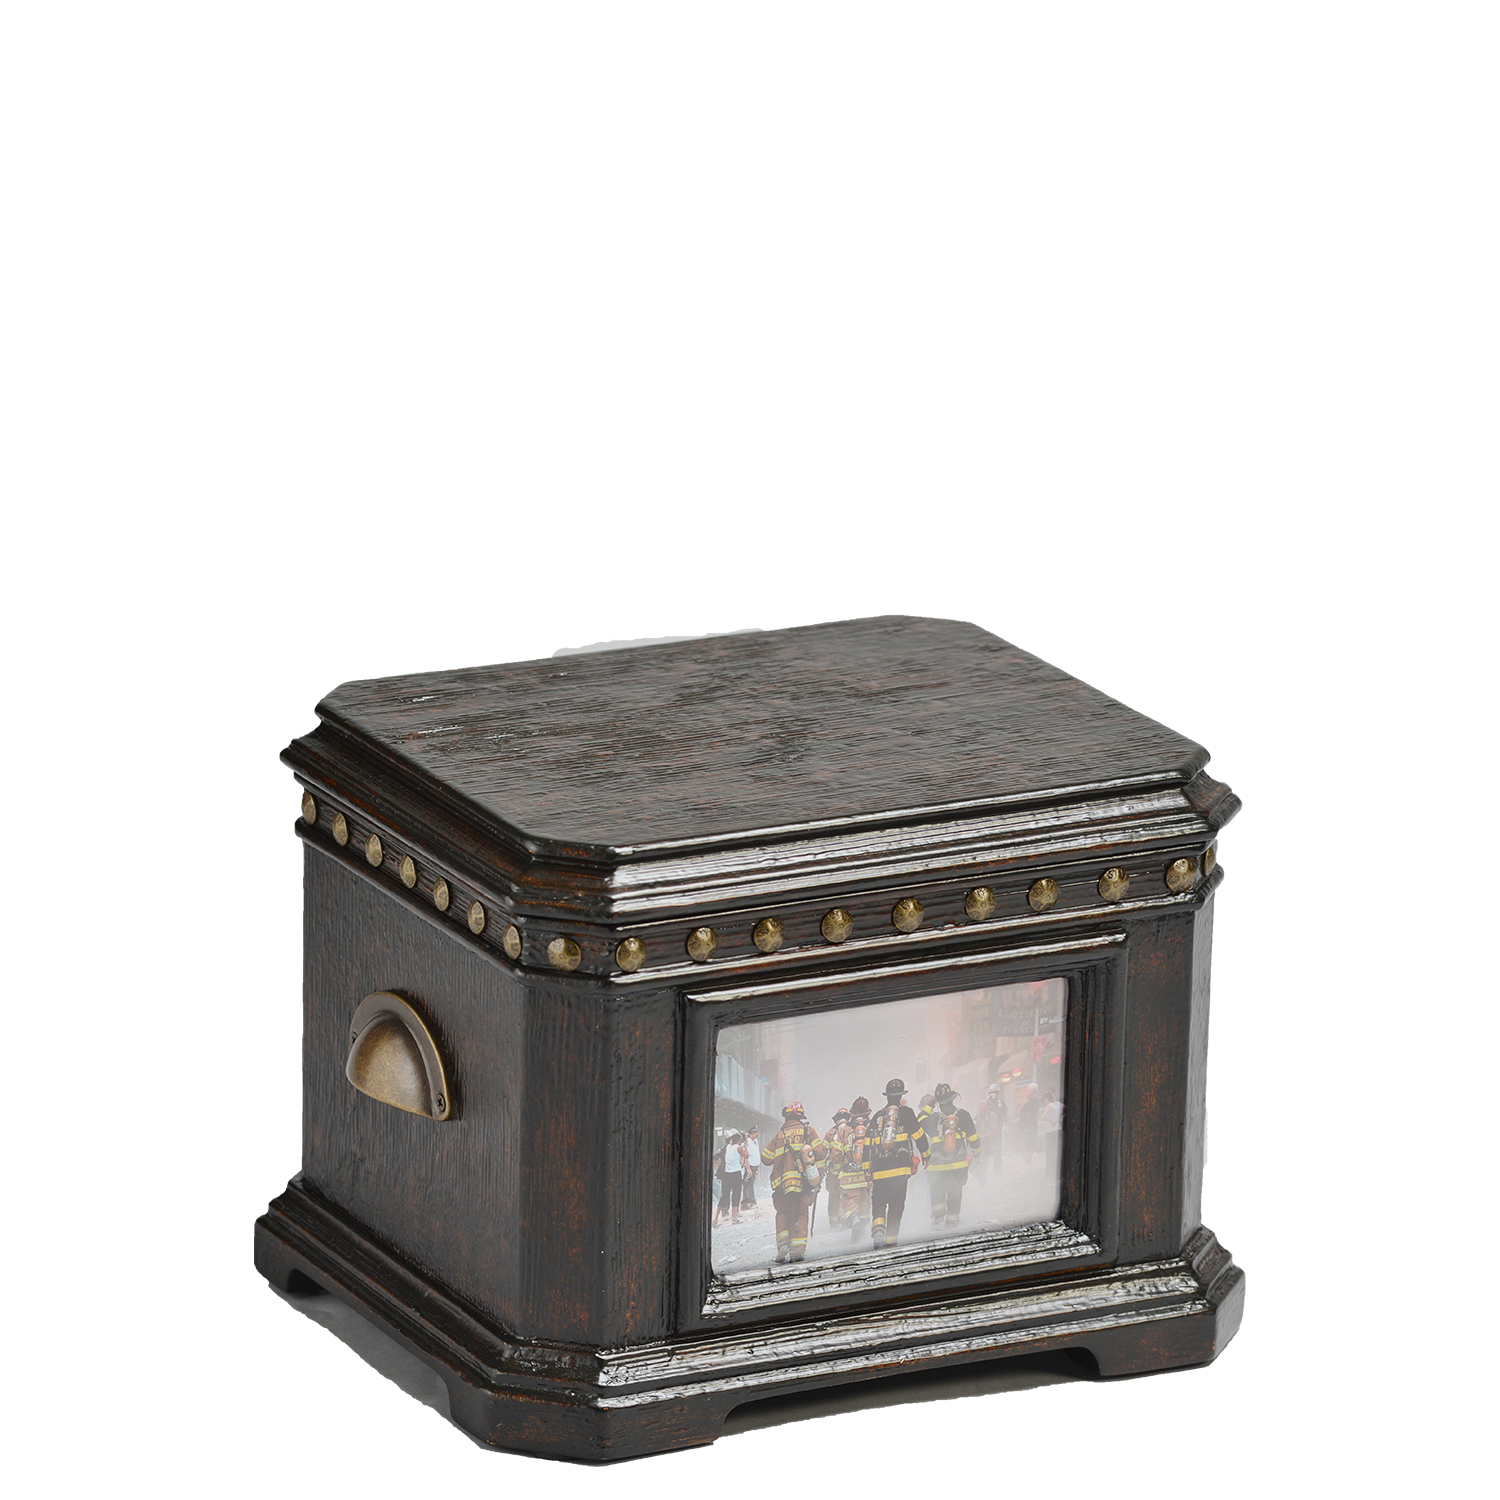 Freedom Memory Life Chest™ - Handsome distressed, charcoal finish, aircraft rivet detailing, and velvet-lined interior. This is our memory sized version of the Freedom Chest.Dimensions: 10.5″ W x 9″ D x 6.25″ HWeight : 7 lbs.